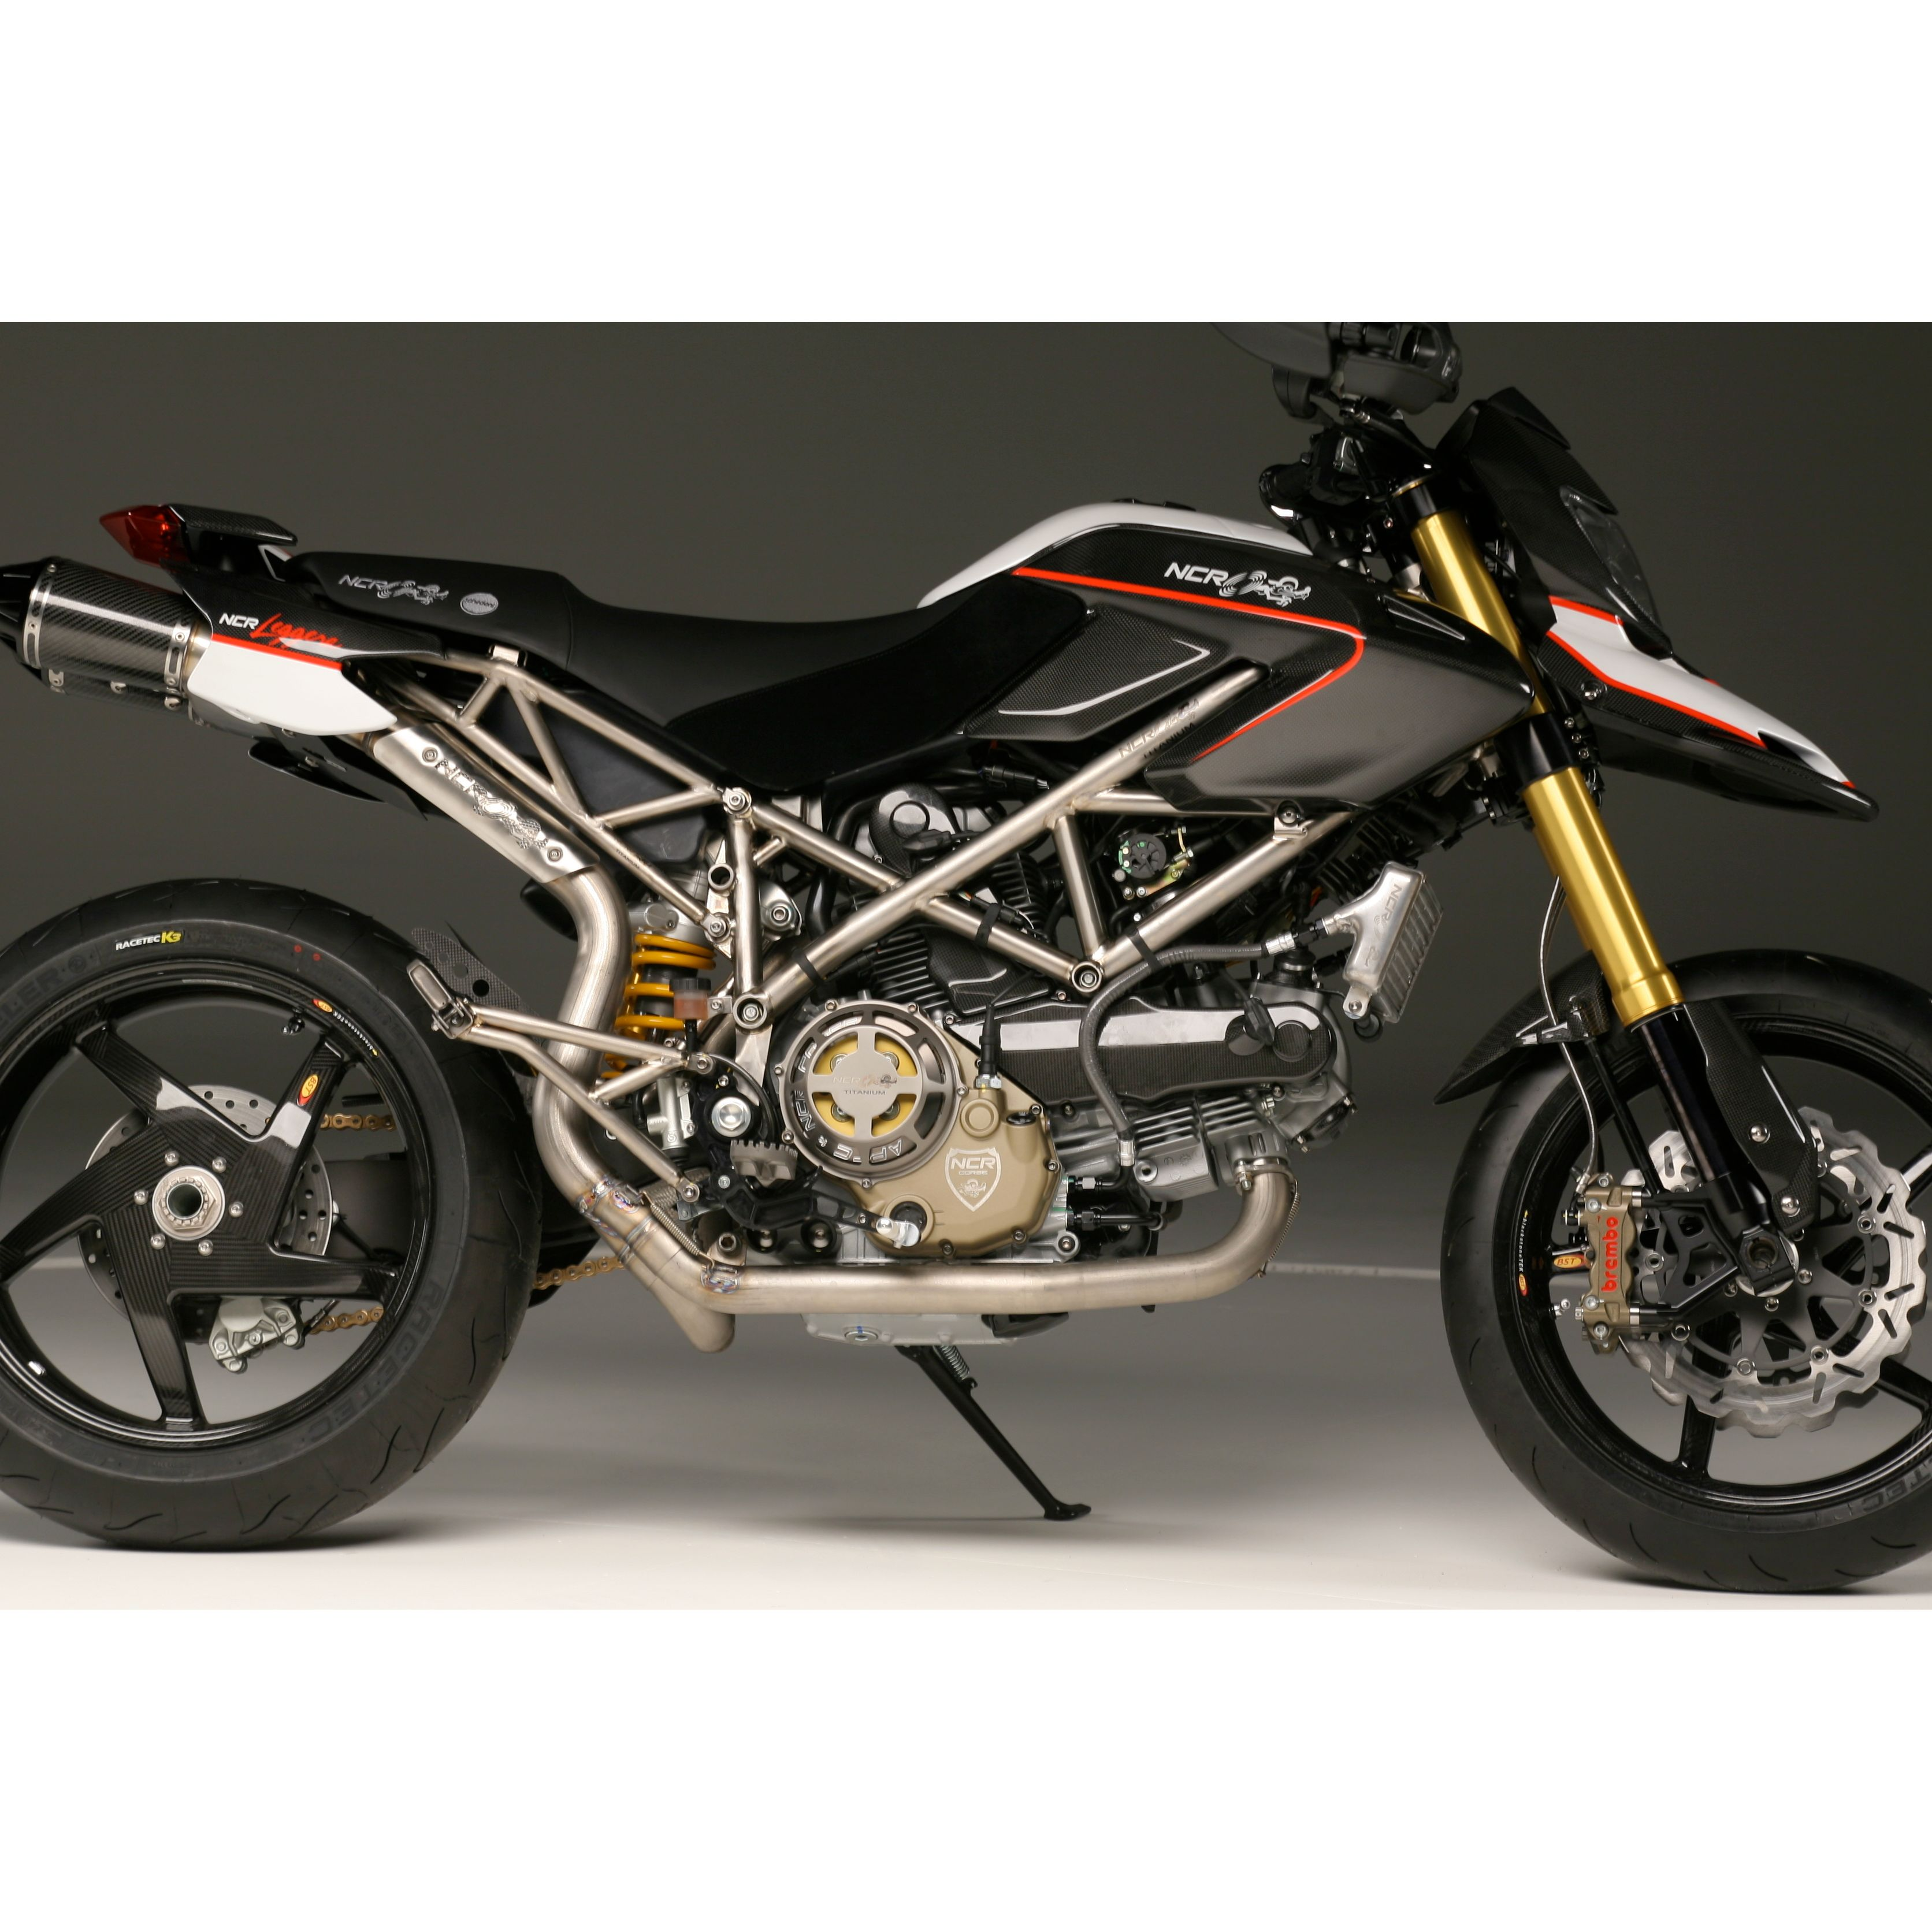 parts ducati hypermotard 796 1100 exhaust ncr ducati hypermotard 1100 carbon fiber. Black Bedroom Furniture Sets. Home Design Ideas